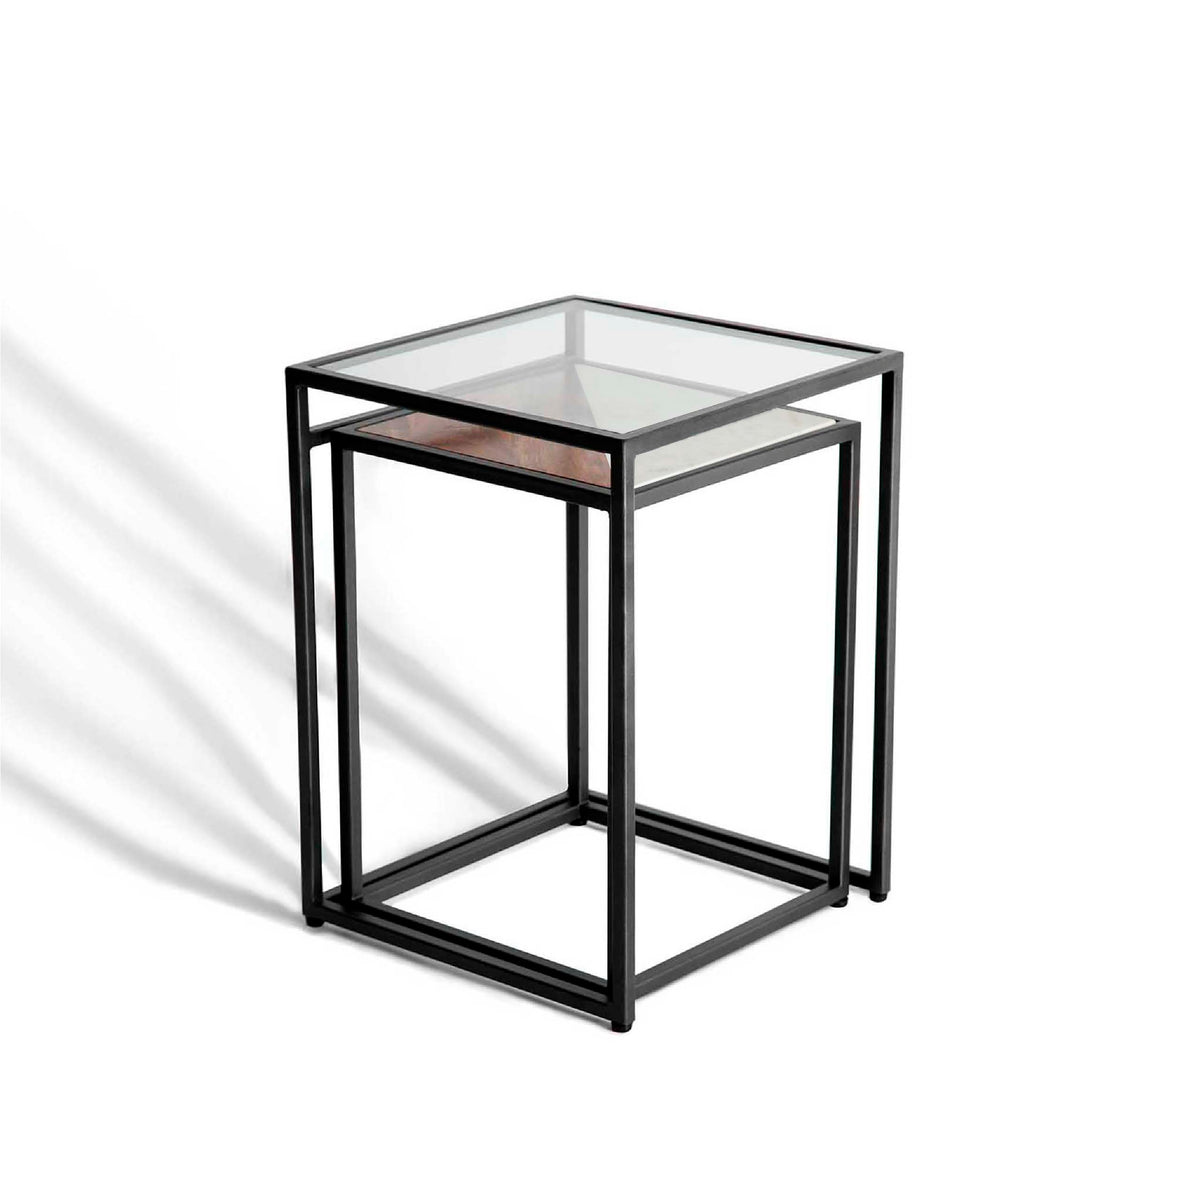 Kandla White Marble & Wood Square Nest of Tables with Grey Base